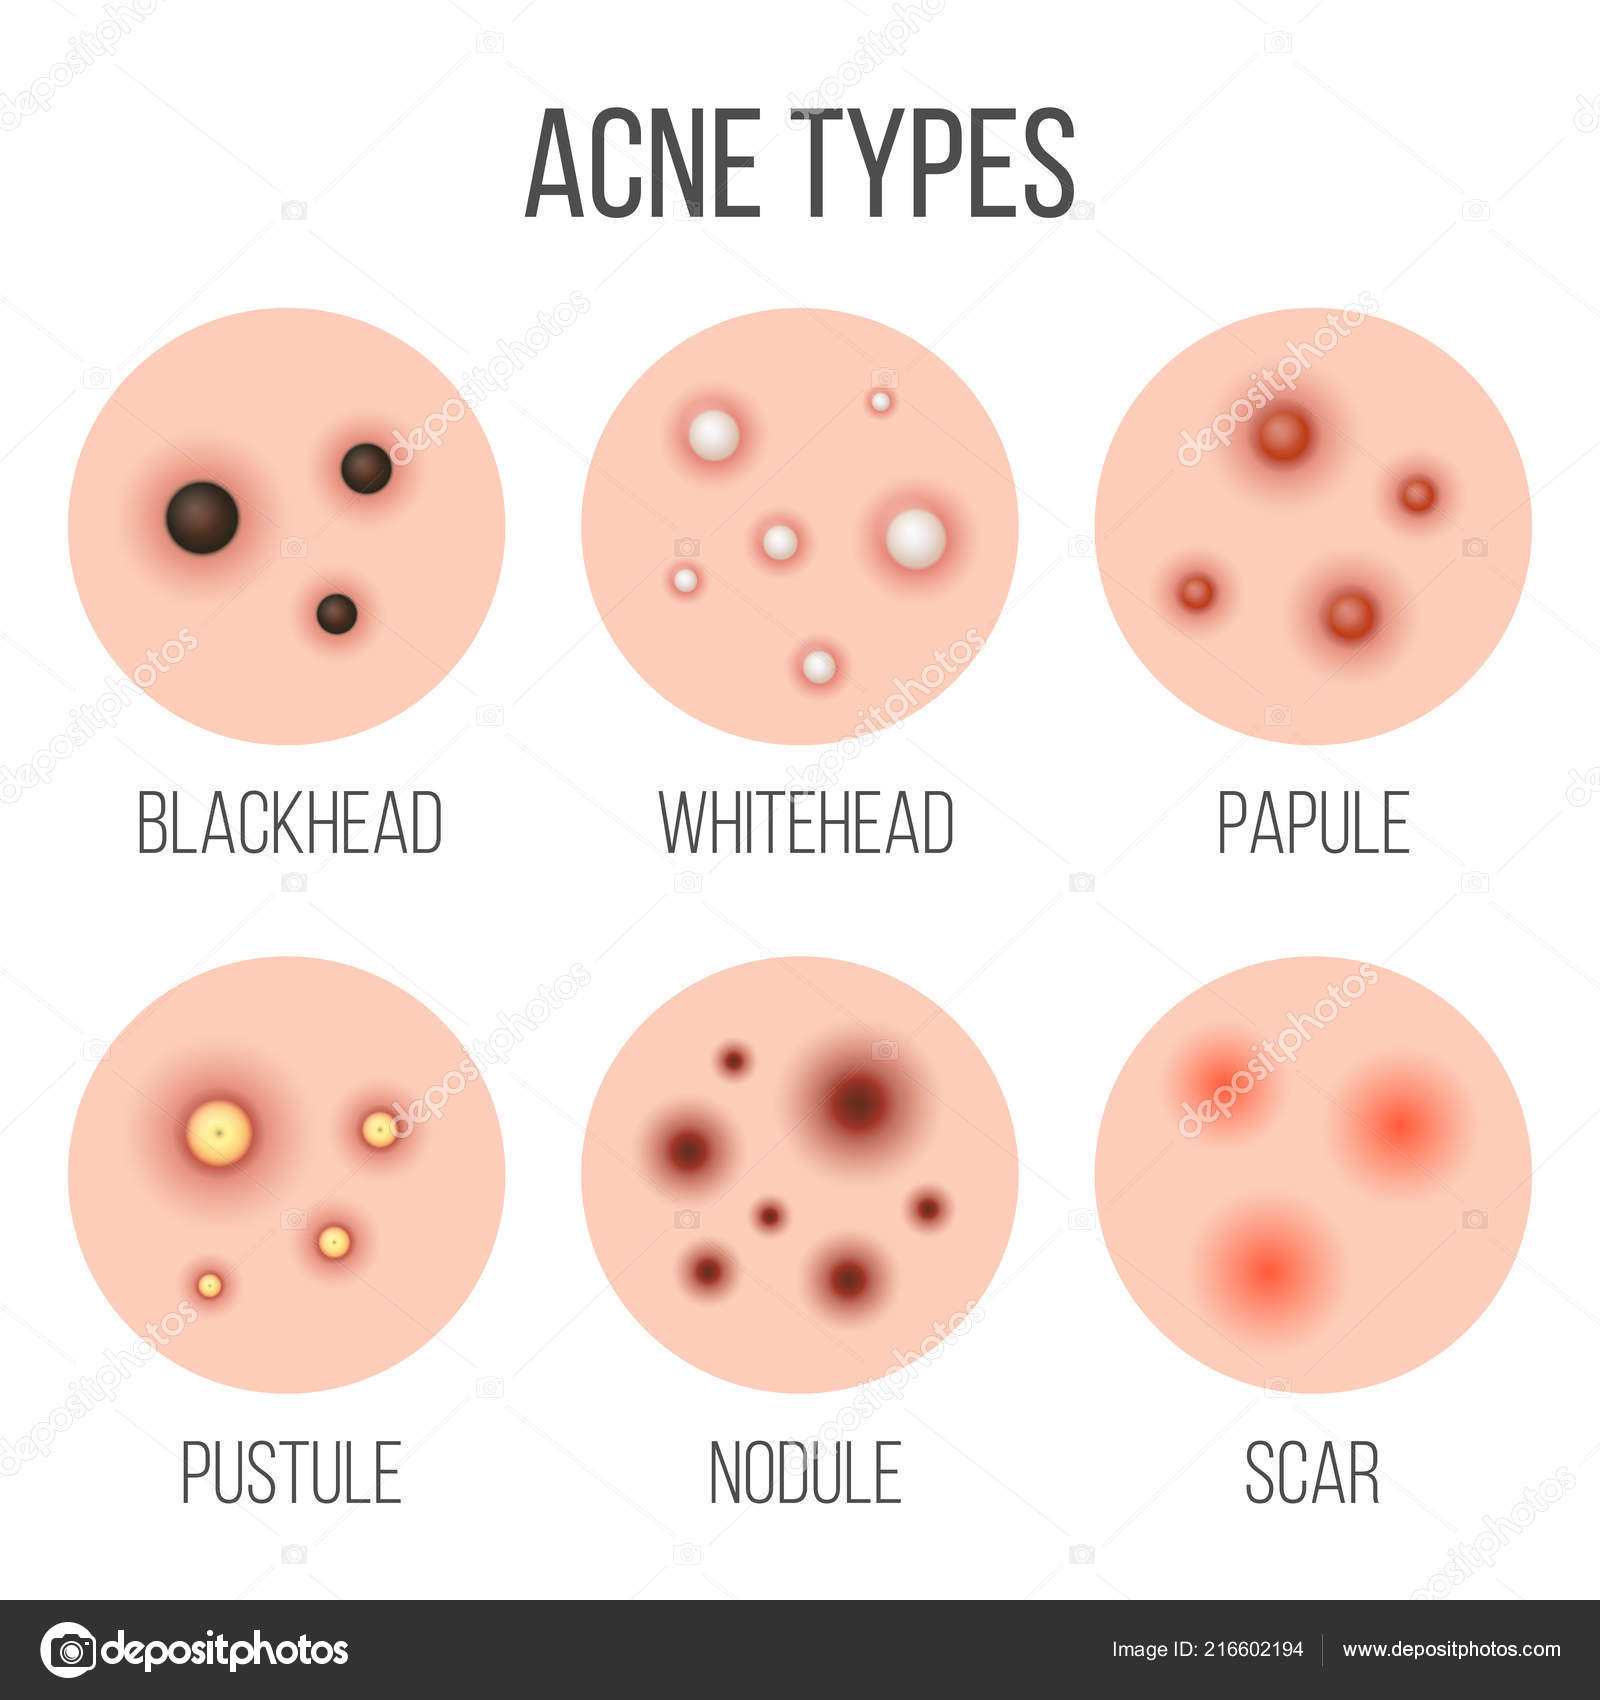 hight resolution of creative vector illustration types of acne pimples skin pores blackhead whitehead scar comedone stages diagram isolated on transparent background